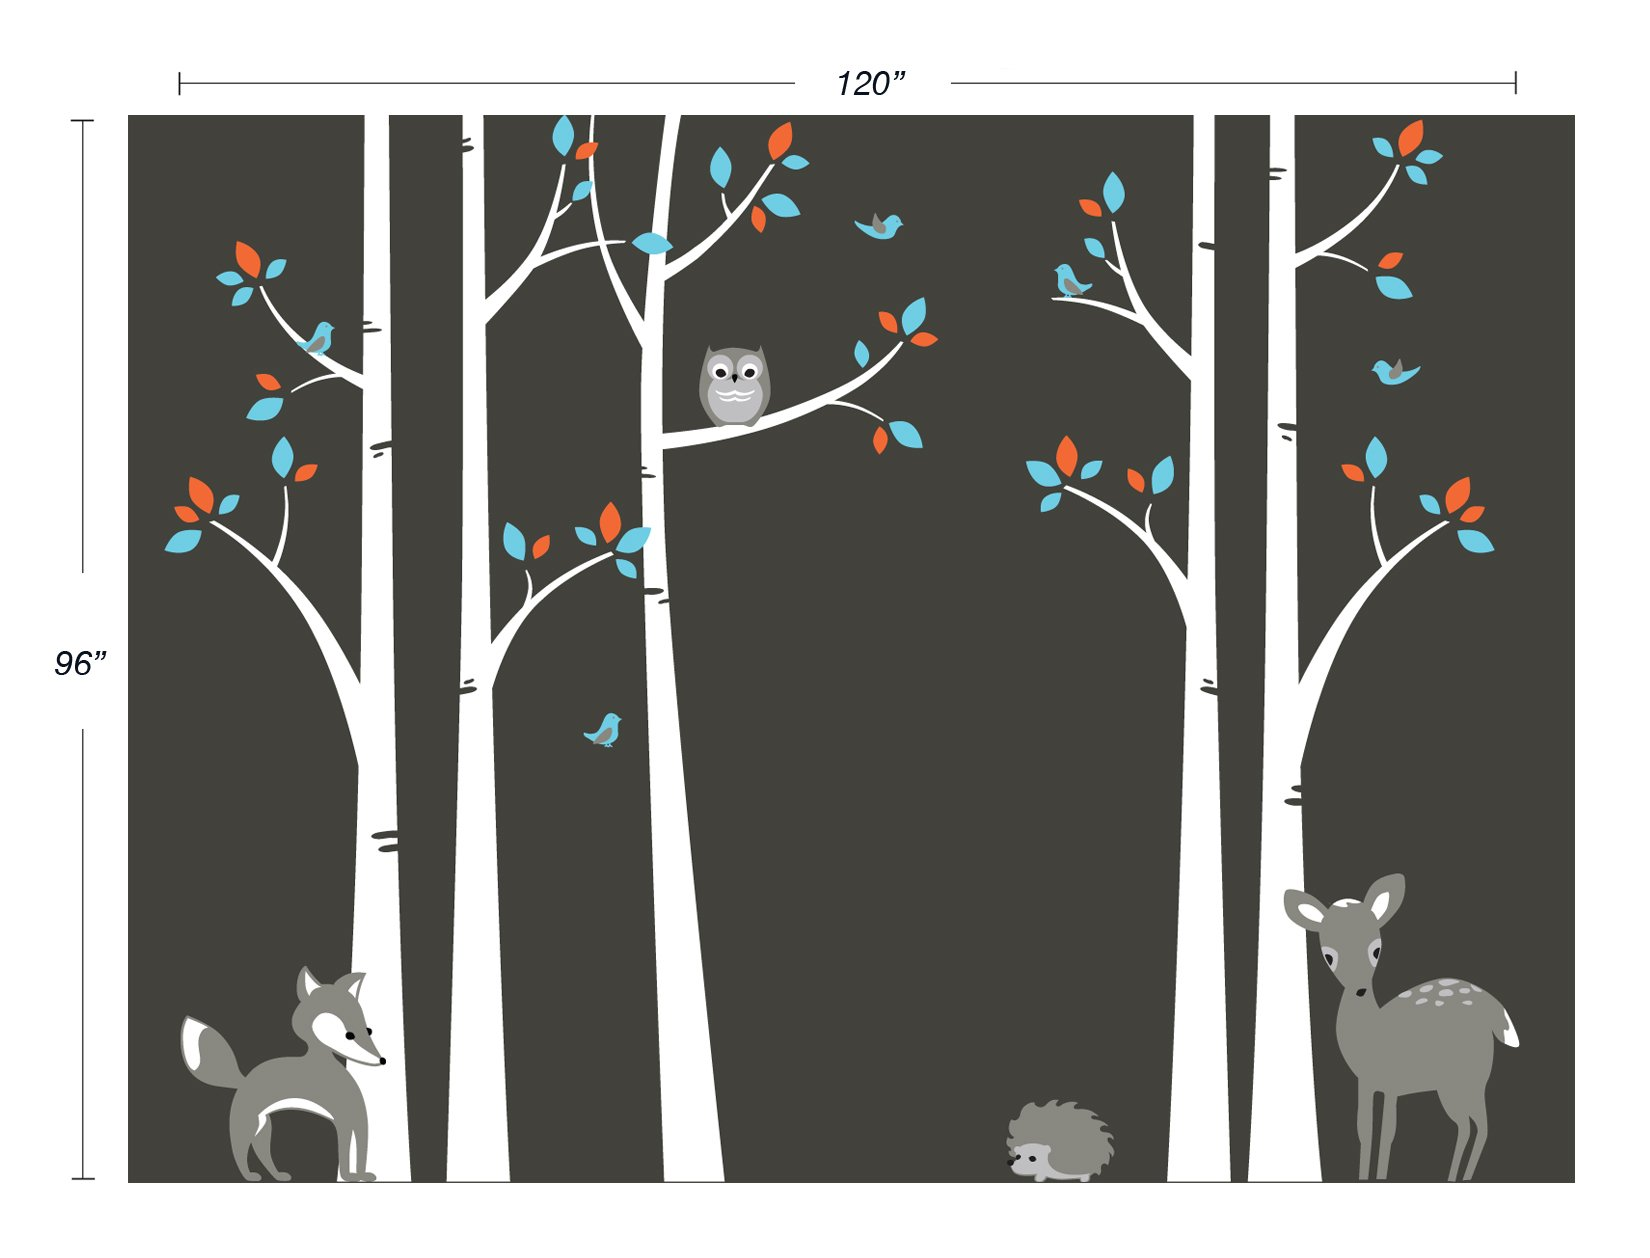 Birch Tree Wall Decals Sticker Set - Woodland Forest Decals with Fox, Owl, Deer, and Hedgehog